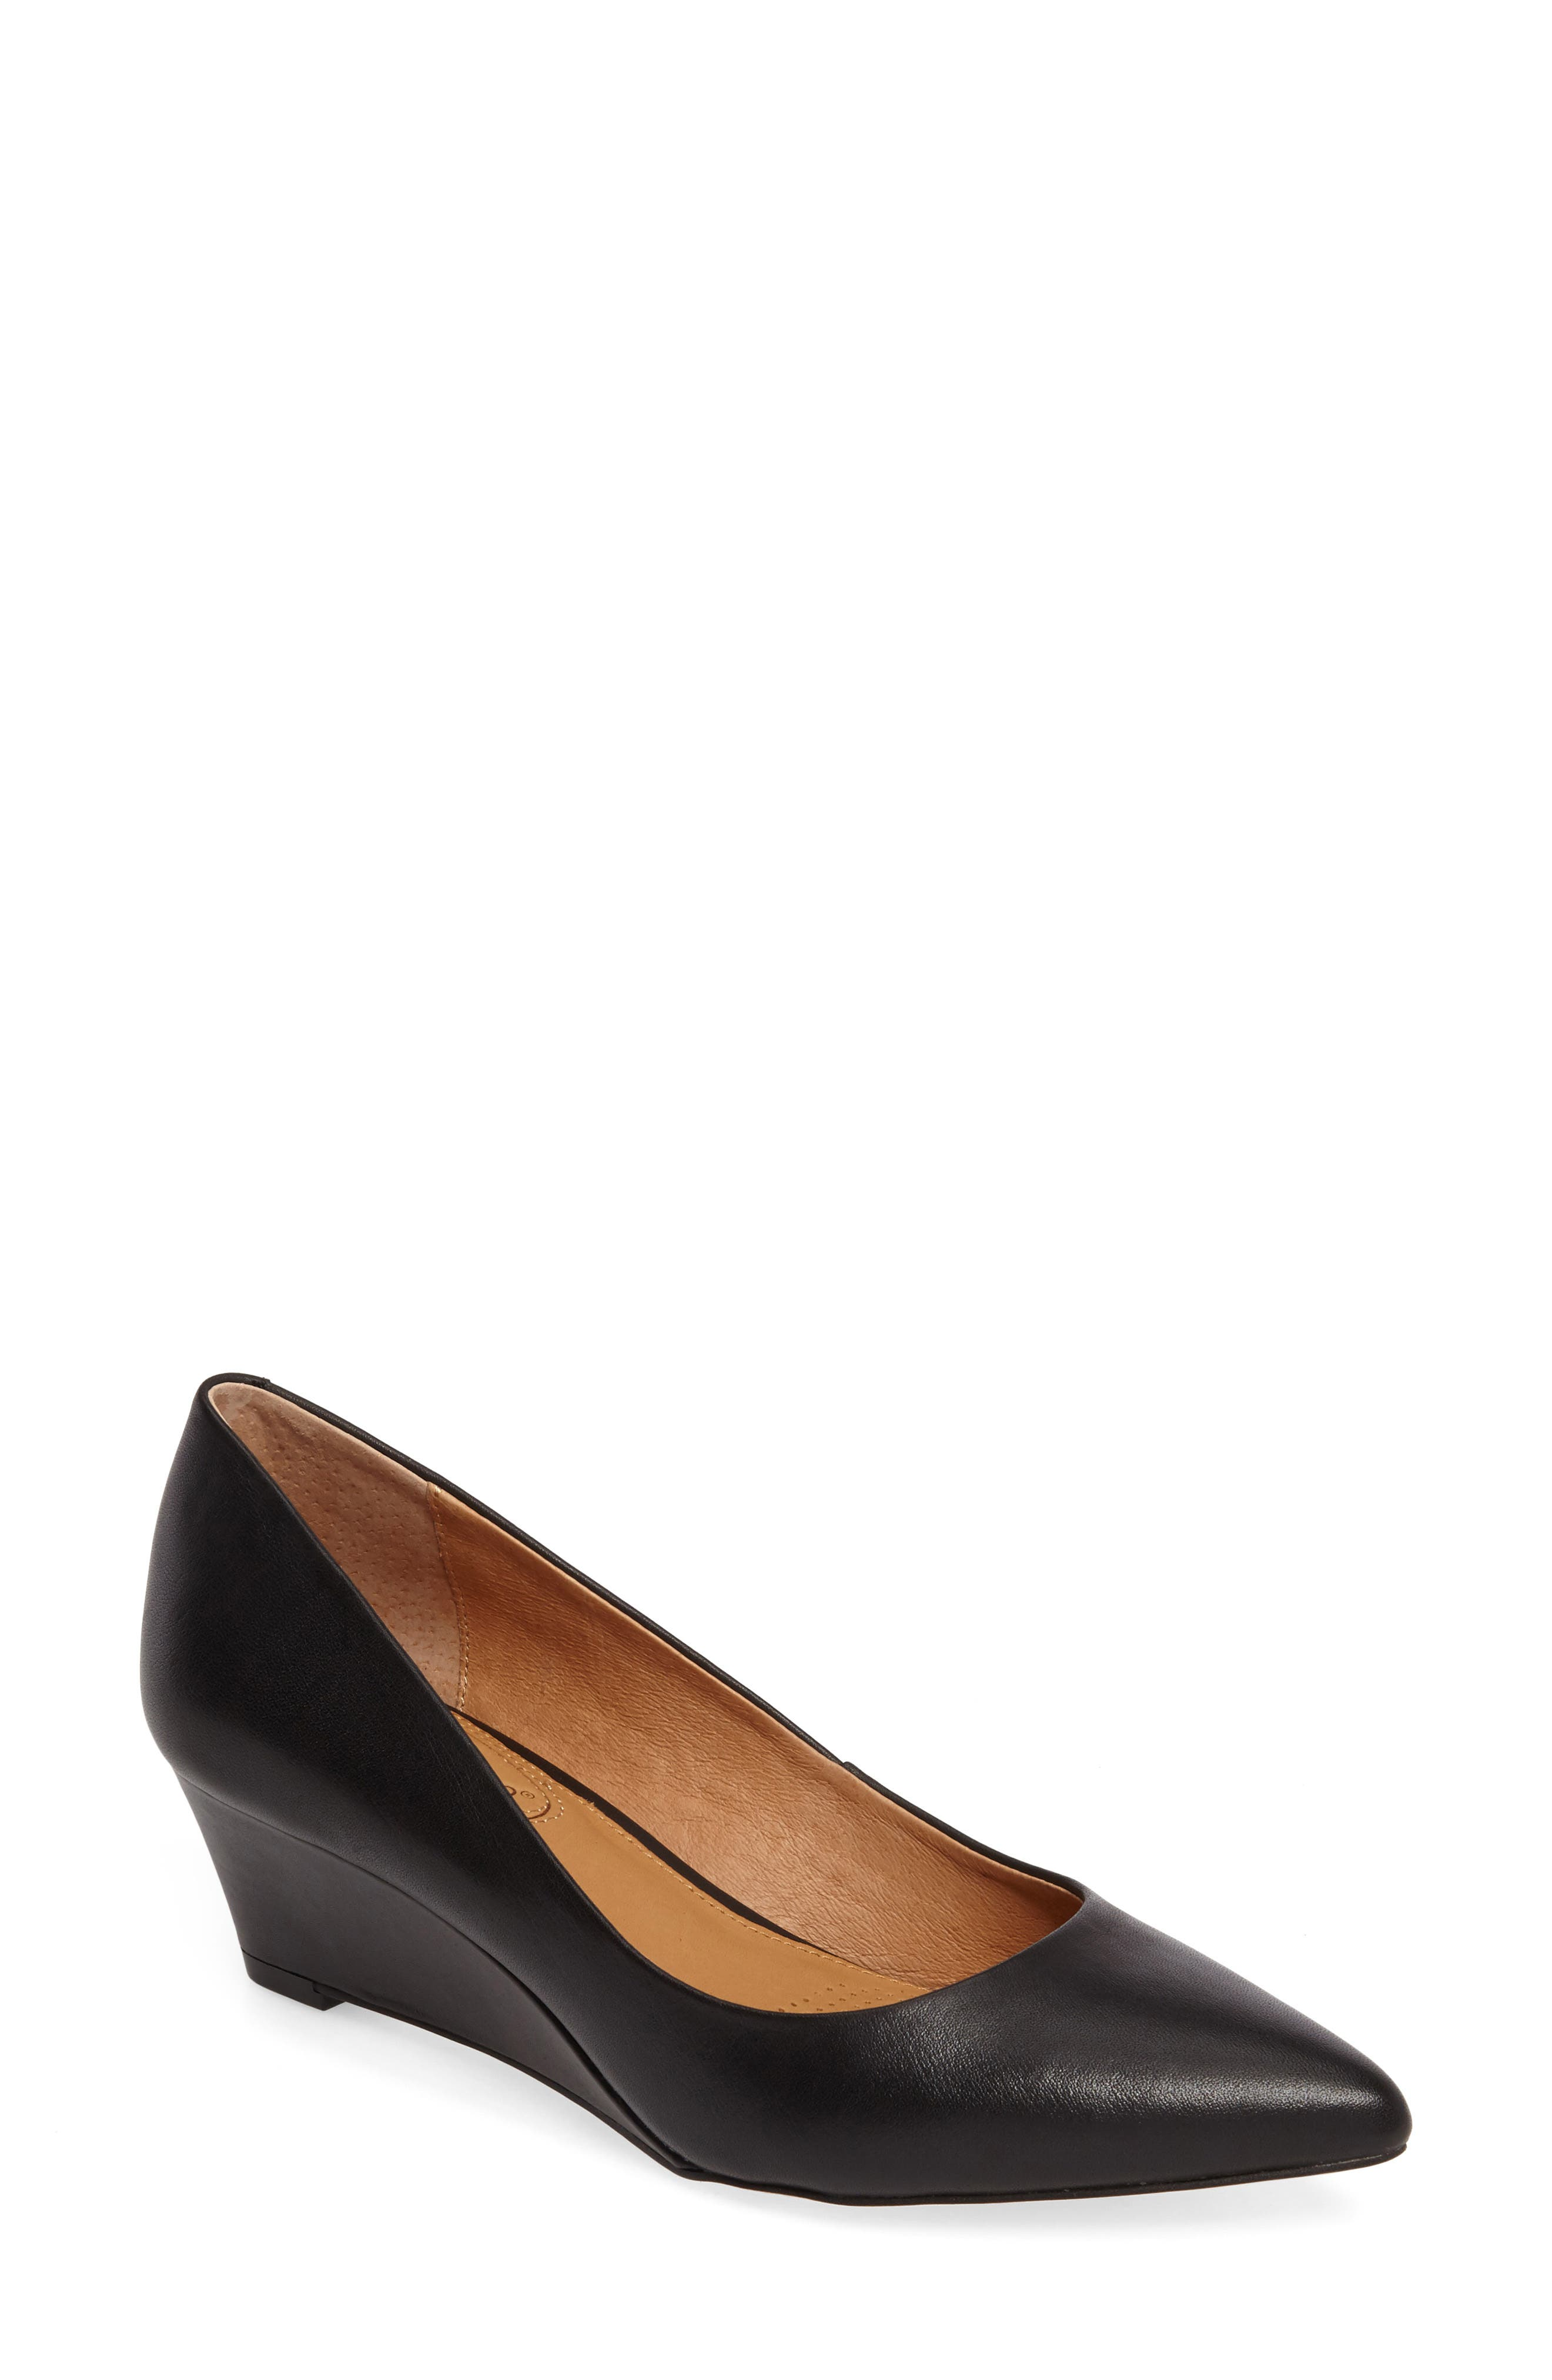 Alternate Image 1 Selected - Corso Como Nelly Pointy Toe Wedge Pump (Women)